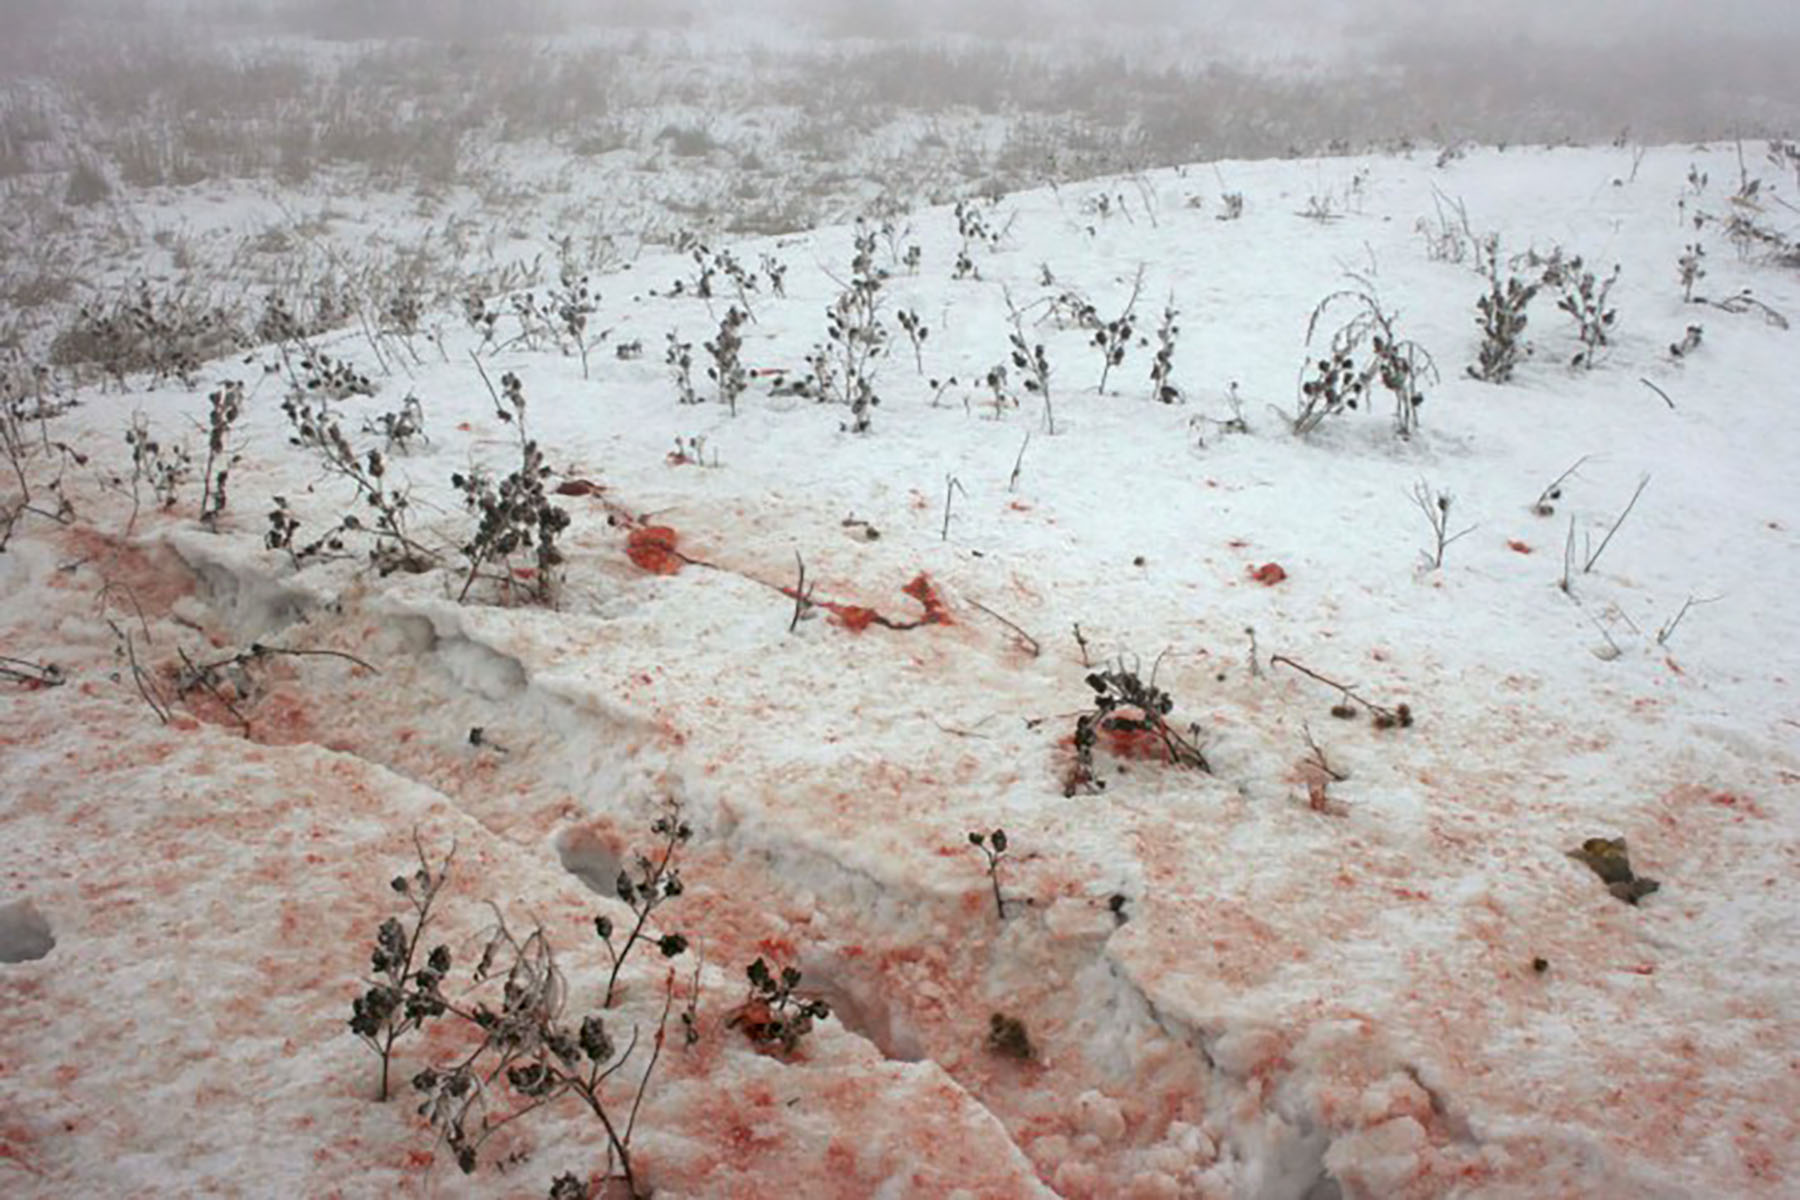 Blood stains are seen on snow at the site of a plane crash outside Almaty